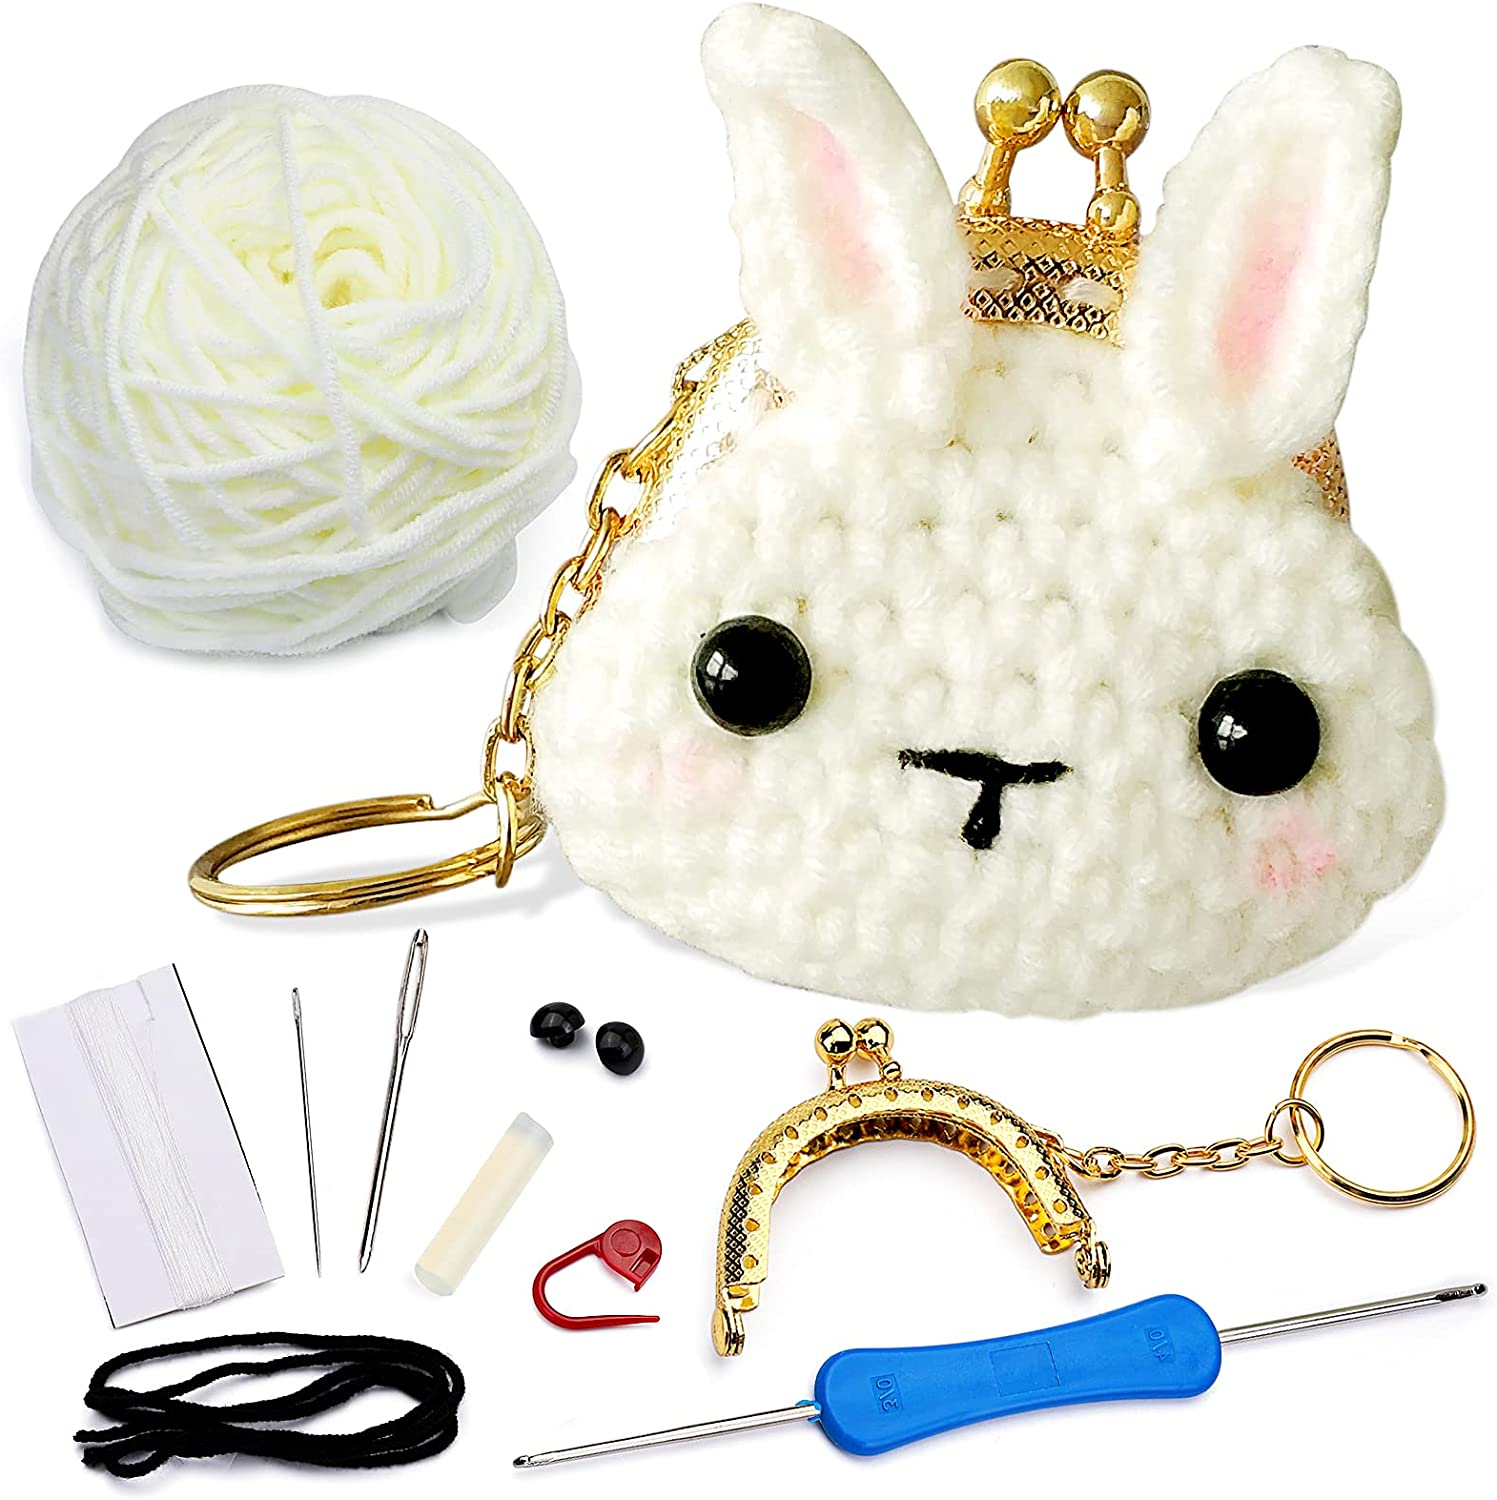 Crochet Making Kit OFFicial site - Animal Omaha Mall Beginners for DIY Crafts Cr